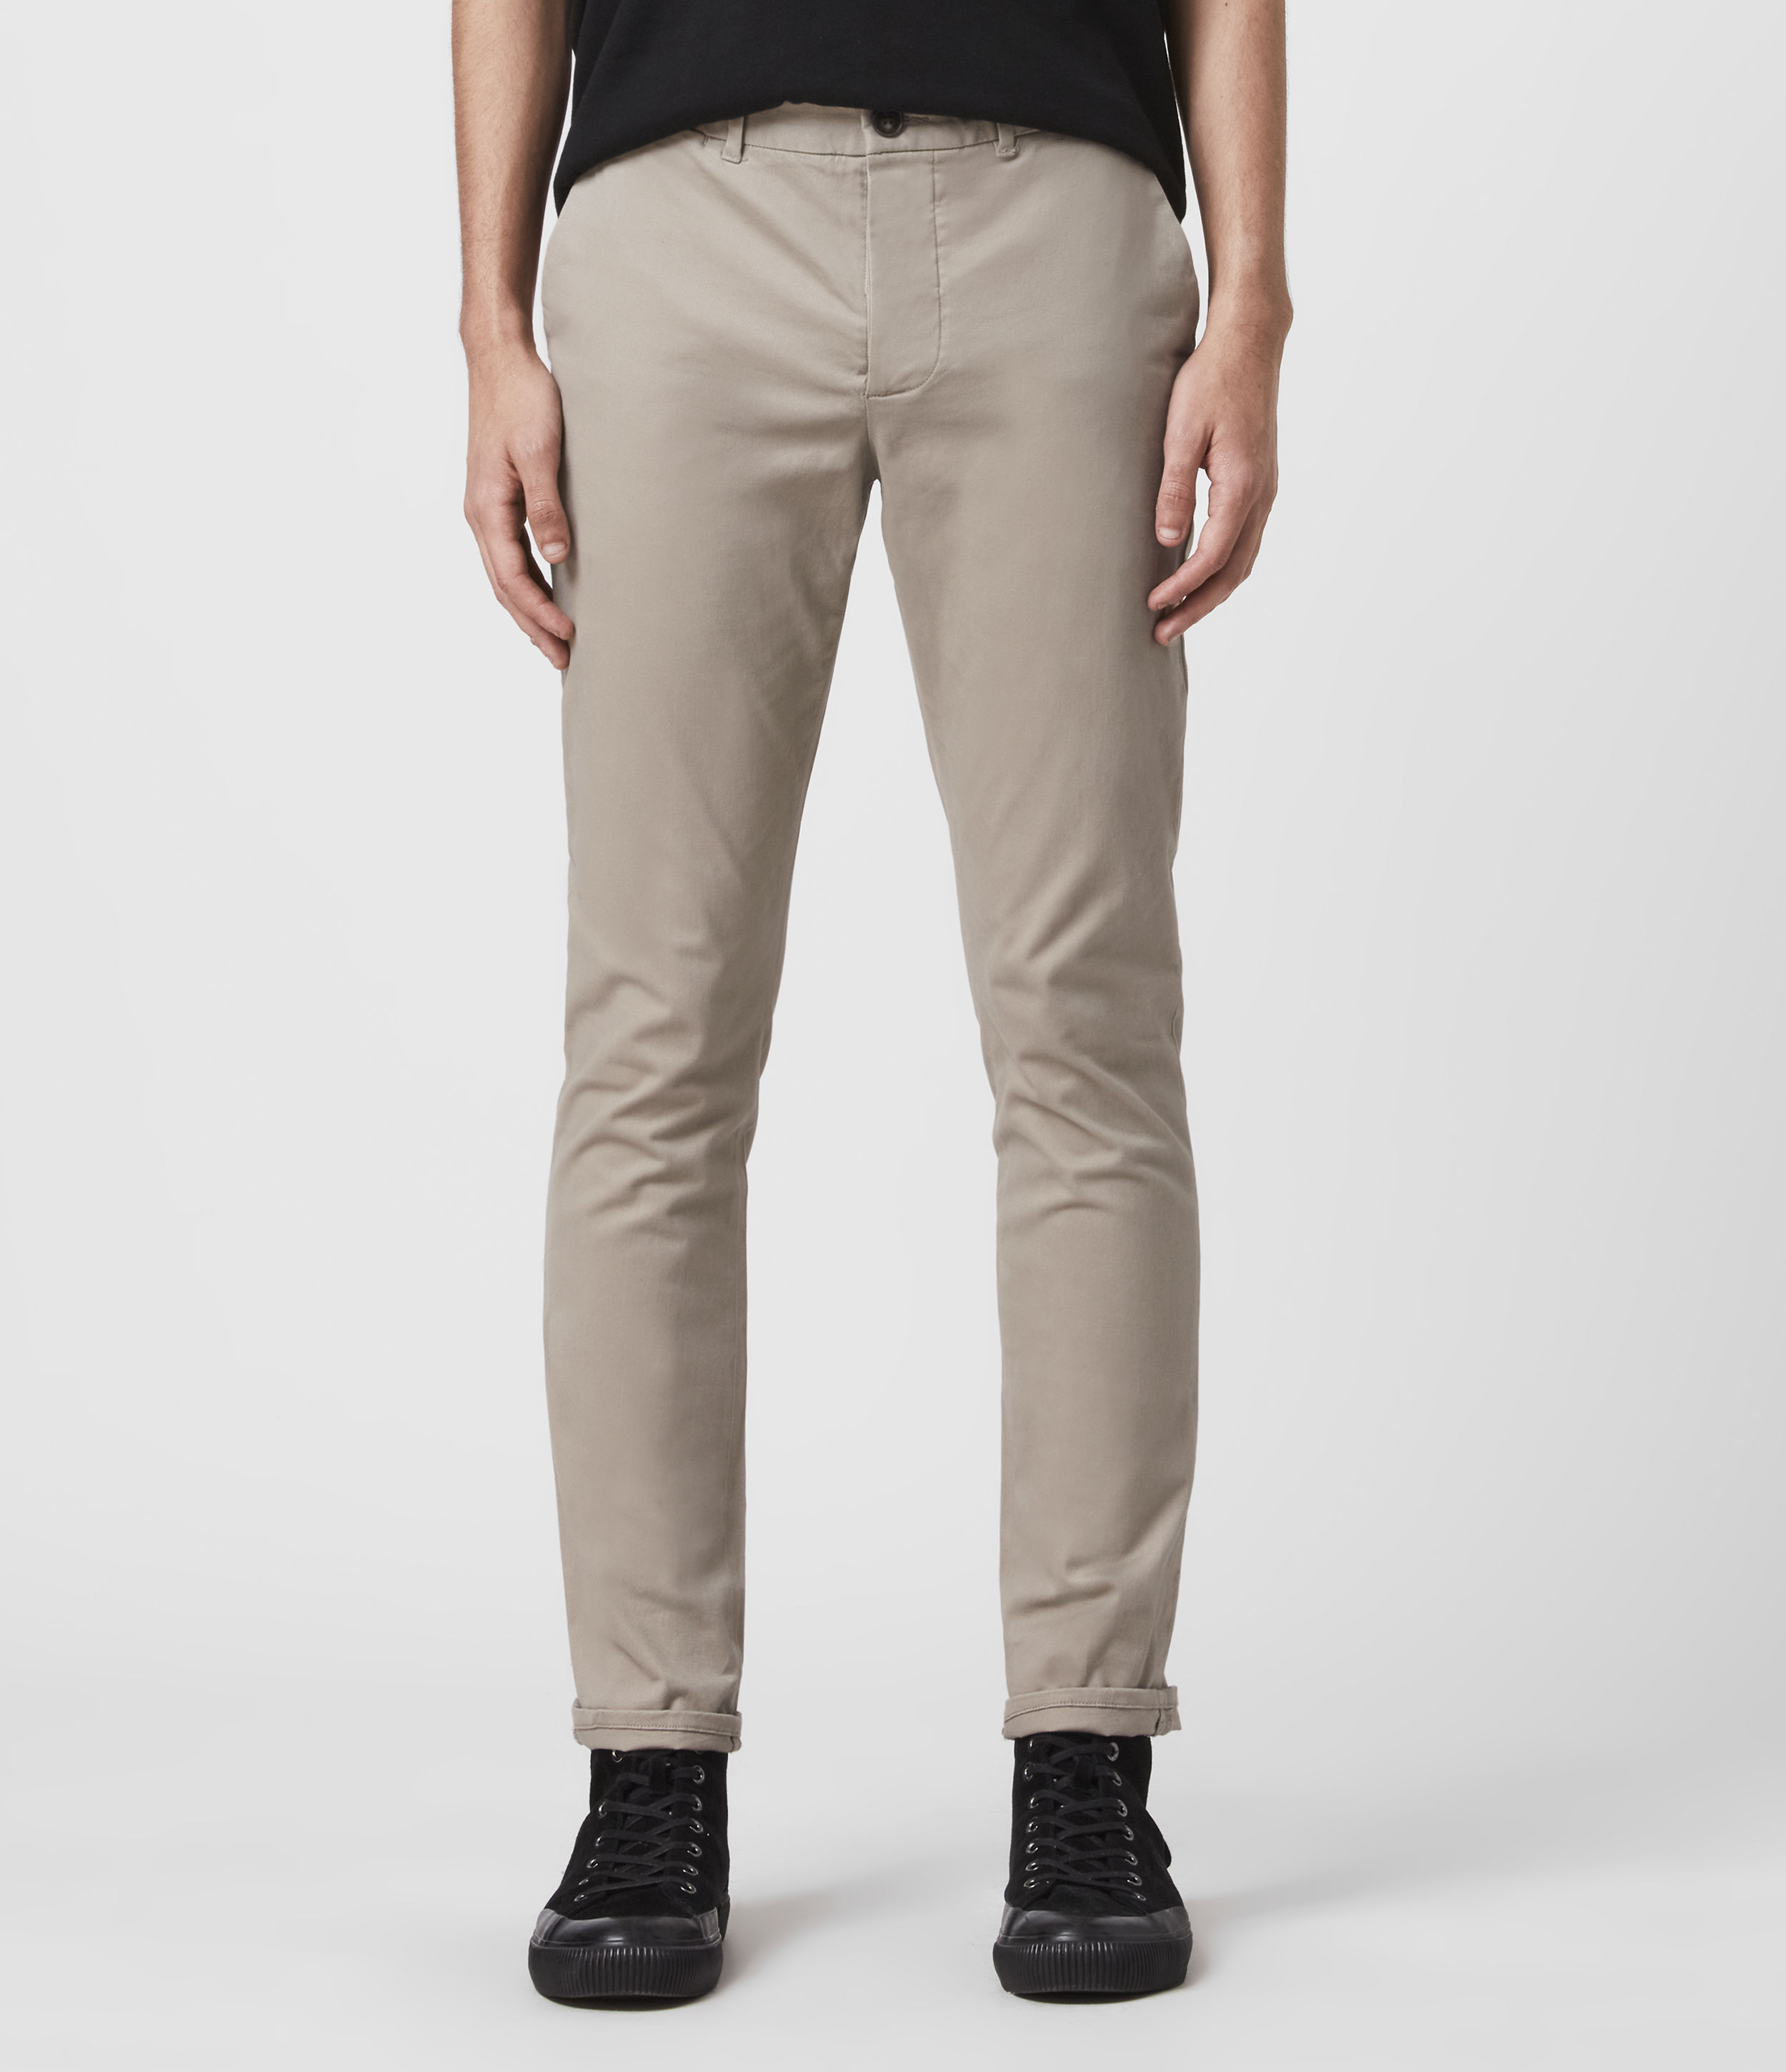 AllSaints Men's Cotton Lightweight Park Skinny Chinos, Natural, Size: 33